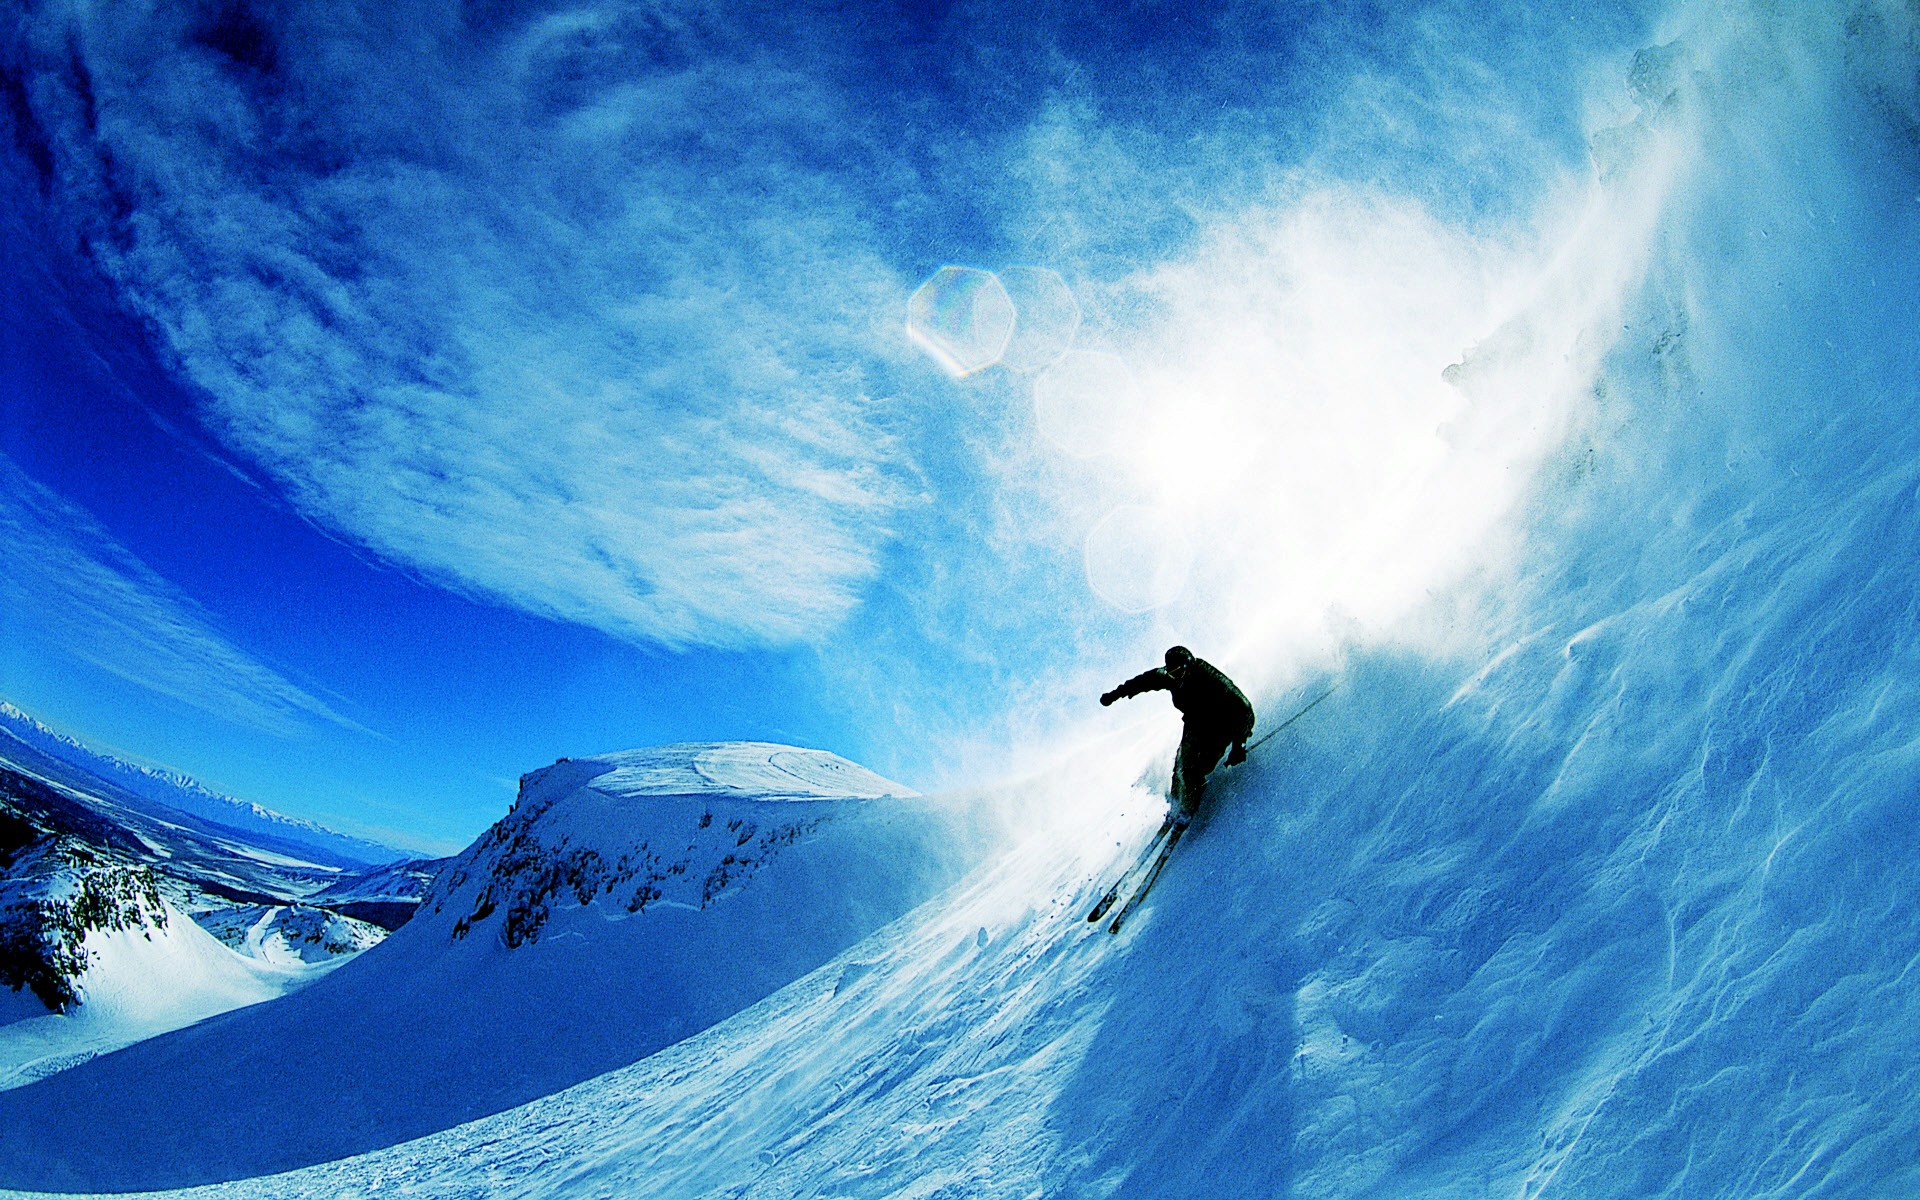 Skiing Over Snow Wallpapers HD Wallpapers 1920x1200